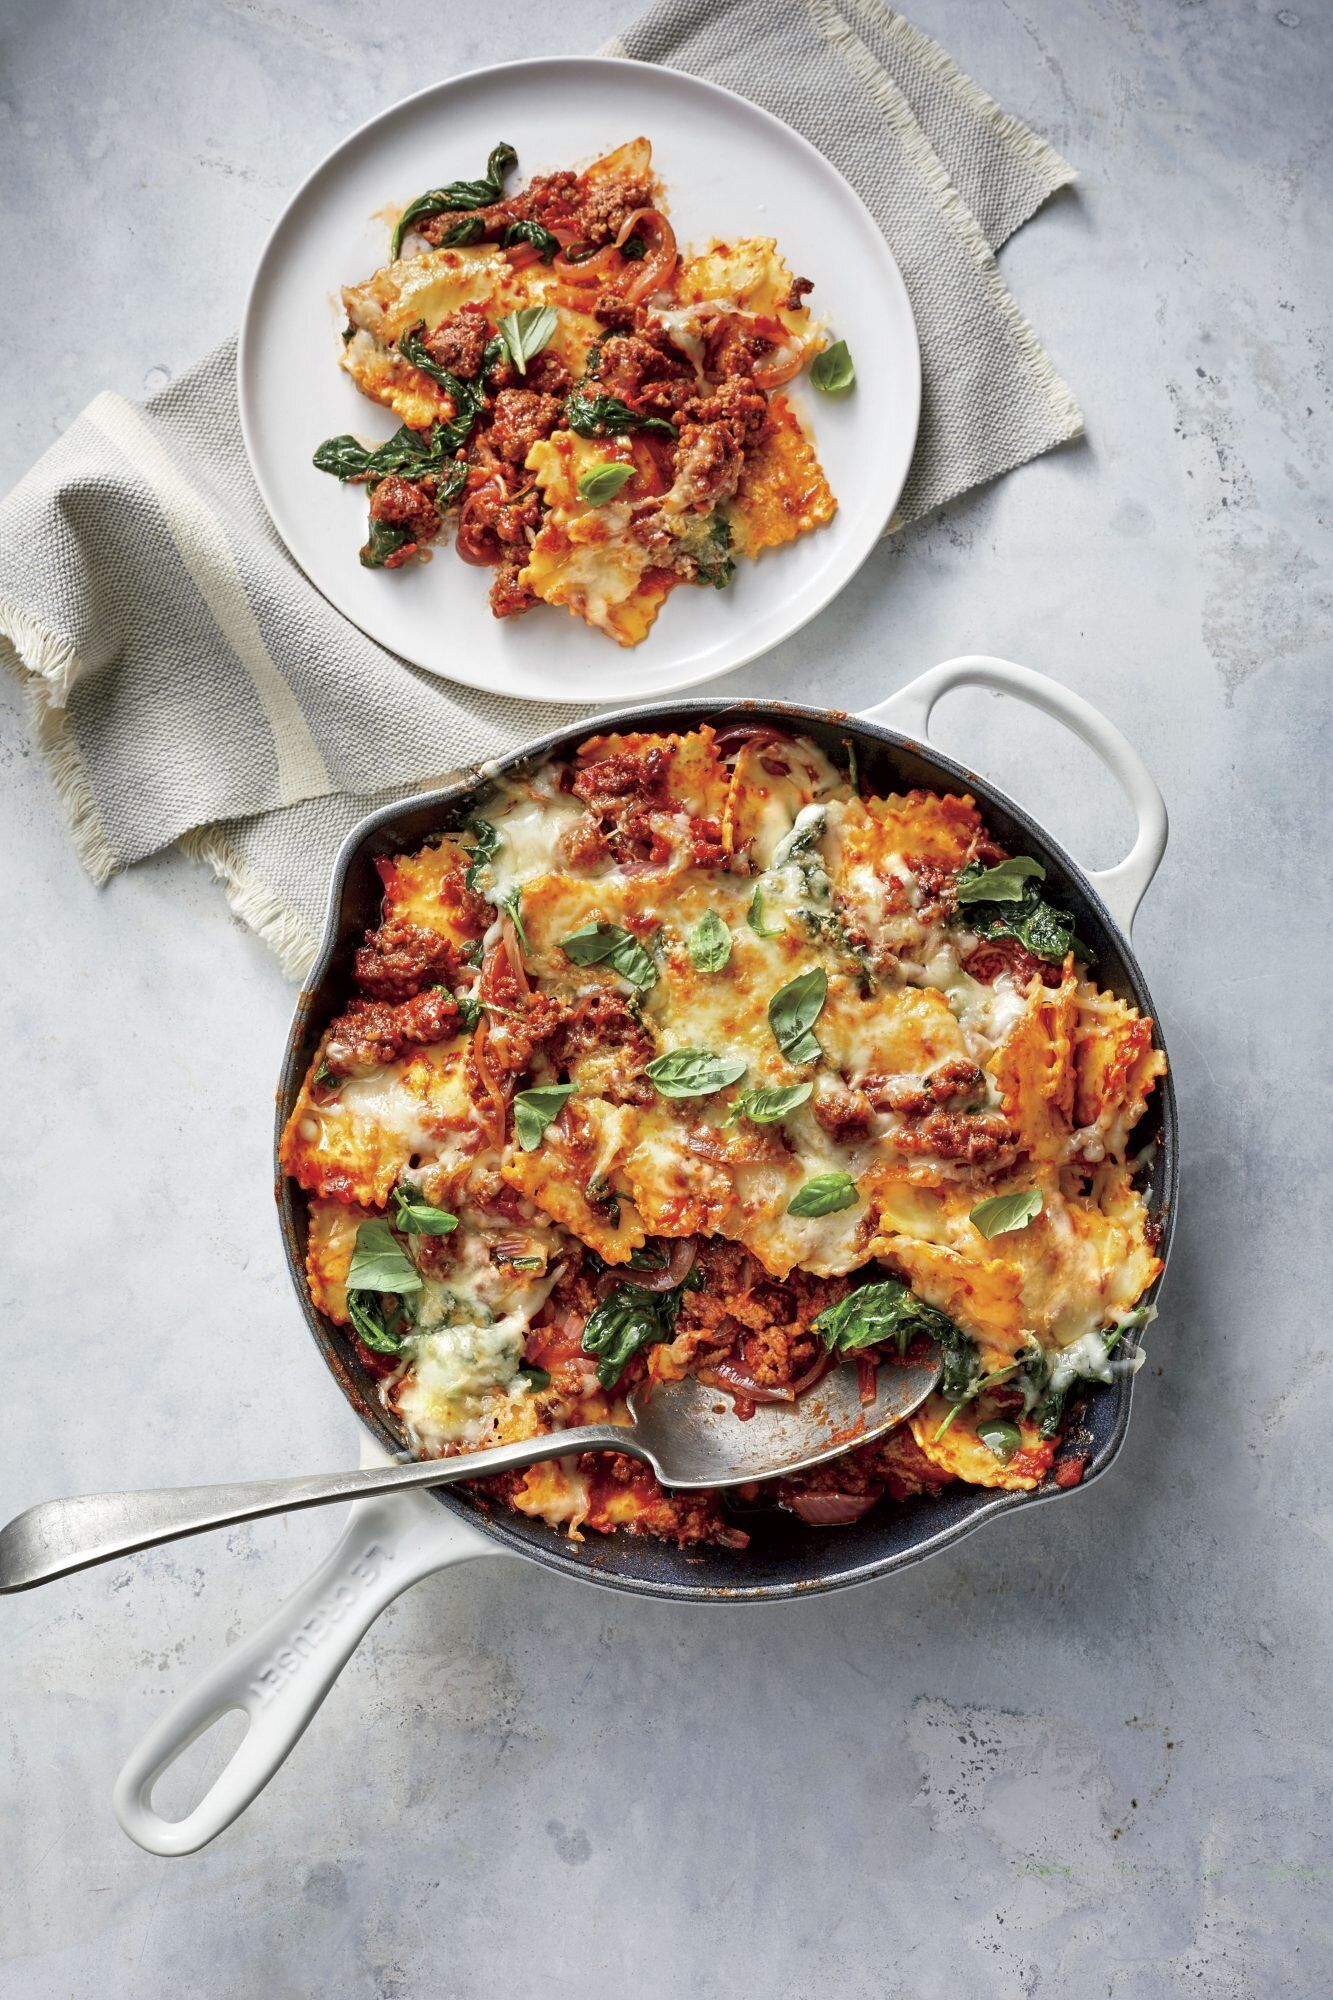 48 Spring Dinner Ideas The Whole Family Will Love In 2020 Dinner With Ground Beef Ravioli Bake Beef Dinner